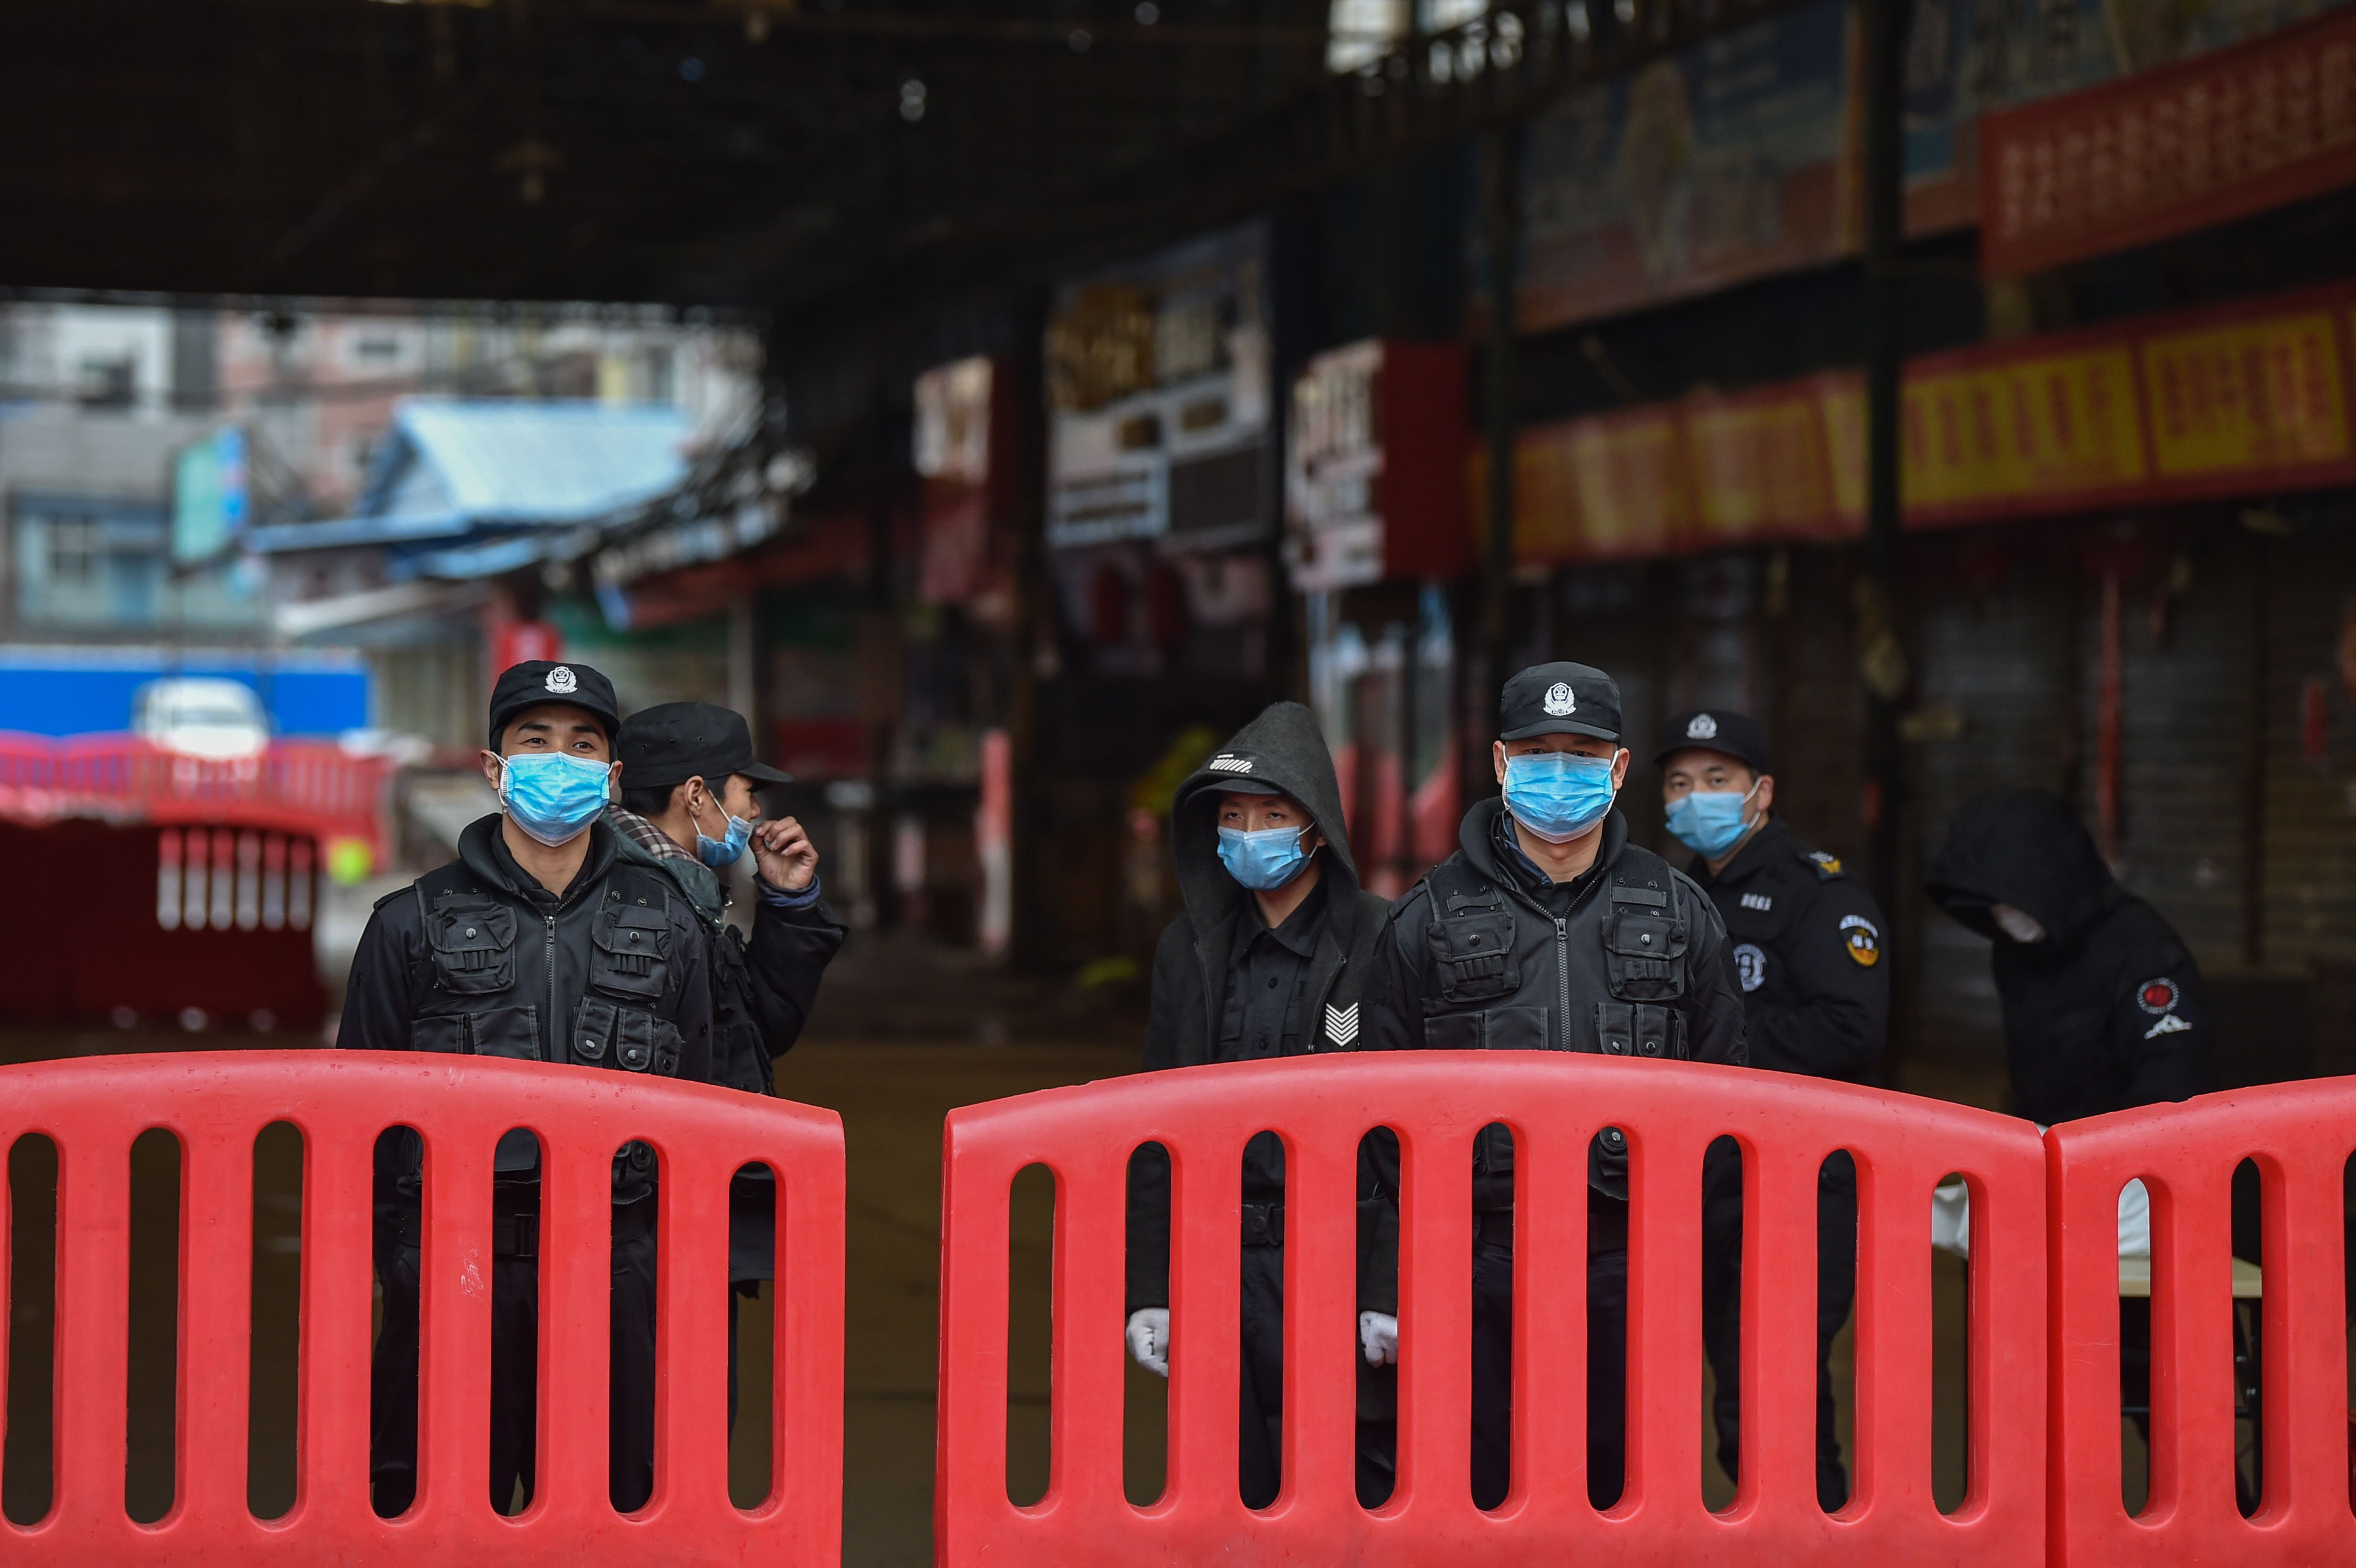 A police officers and security guards stand outside the Huanan Seafood Wholesale Market where the coronavirus was detected in Wuhan on January 24, 2020. (HECTOR RETAMAL/AFP via Getty Images)